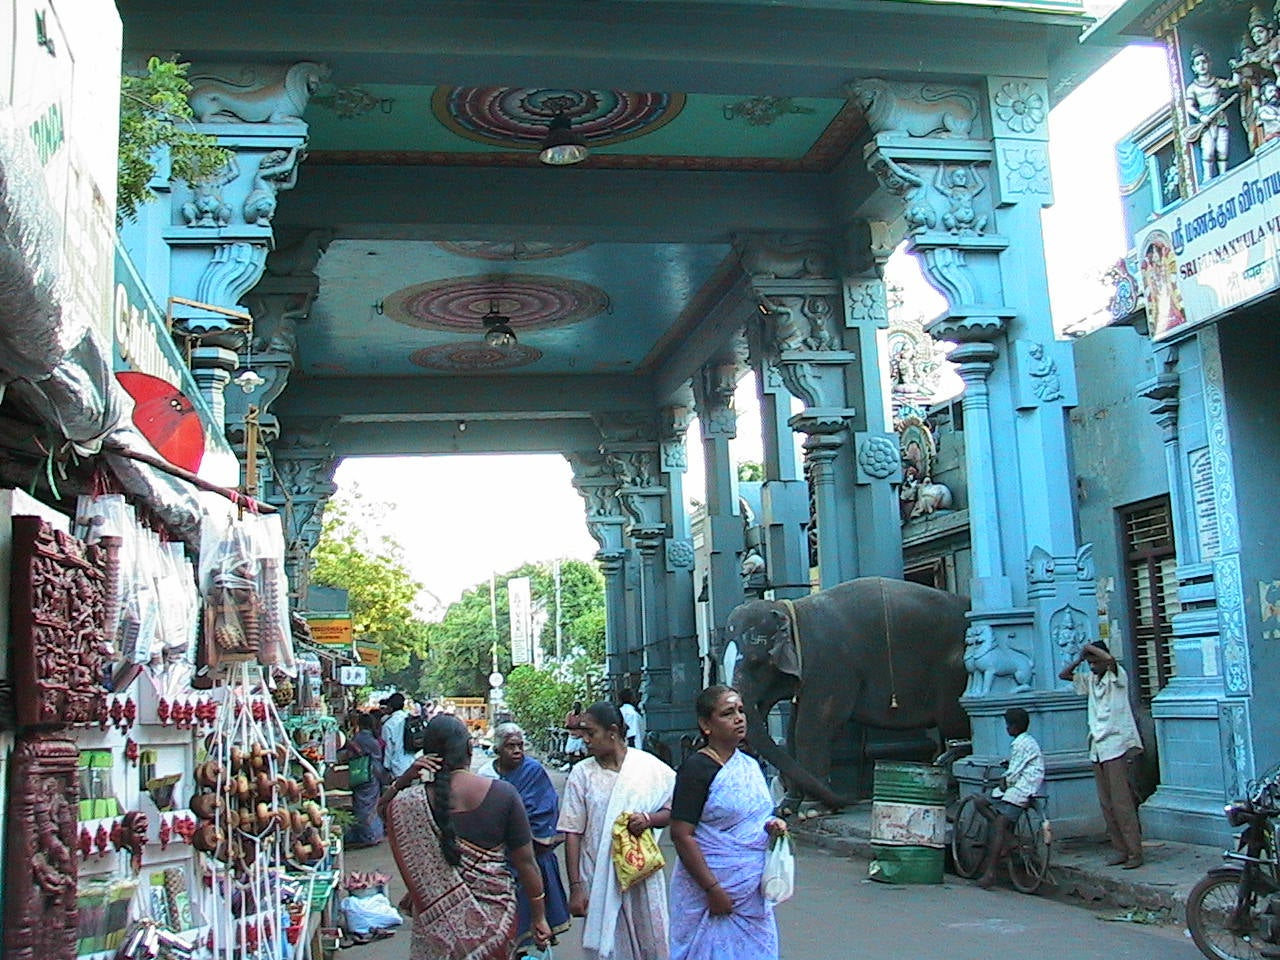 Ciudad en Pondicherry